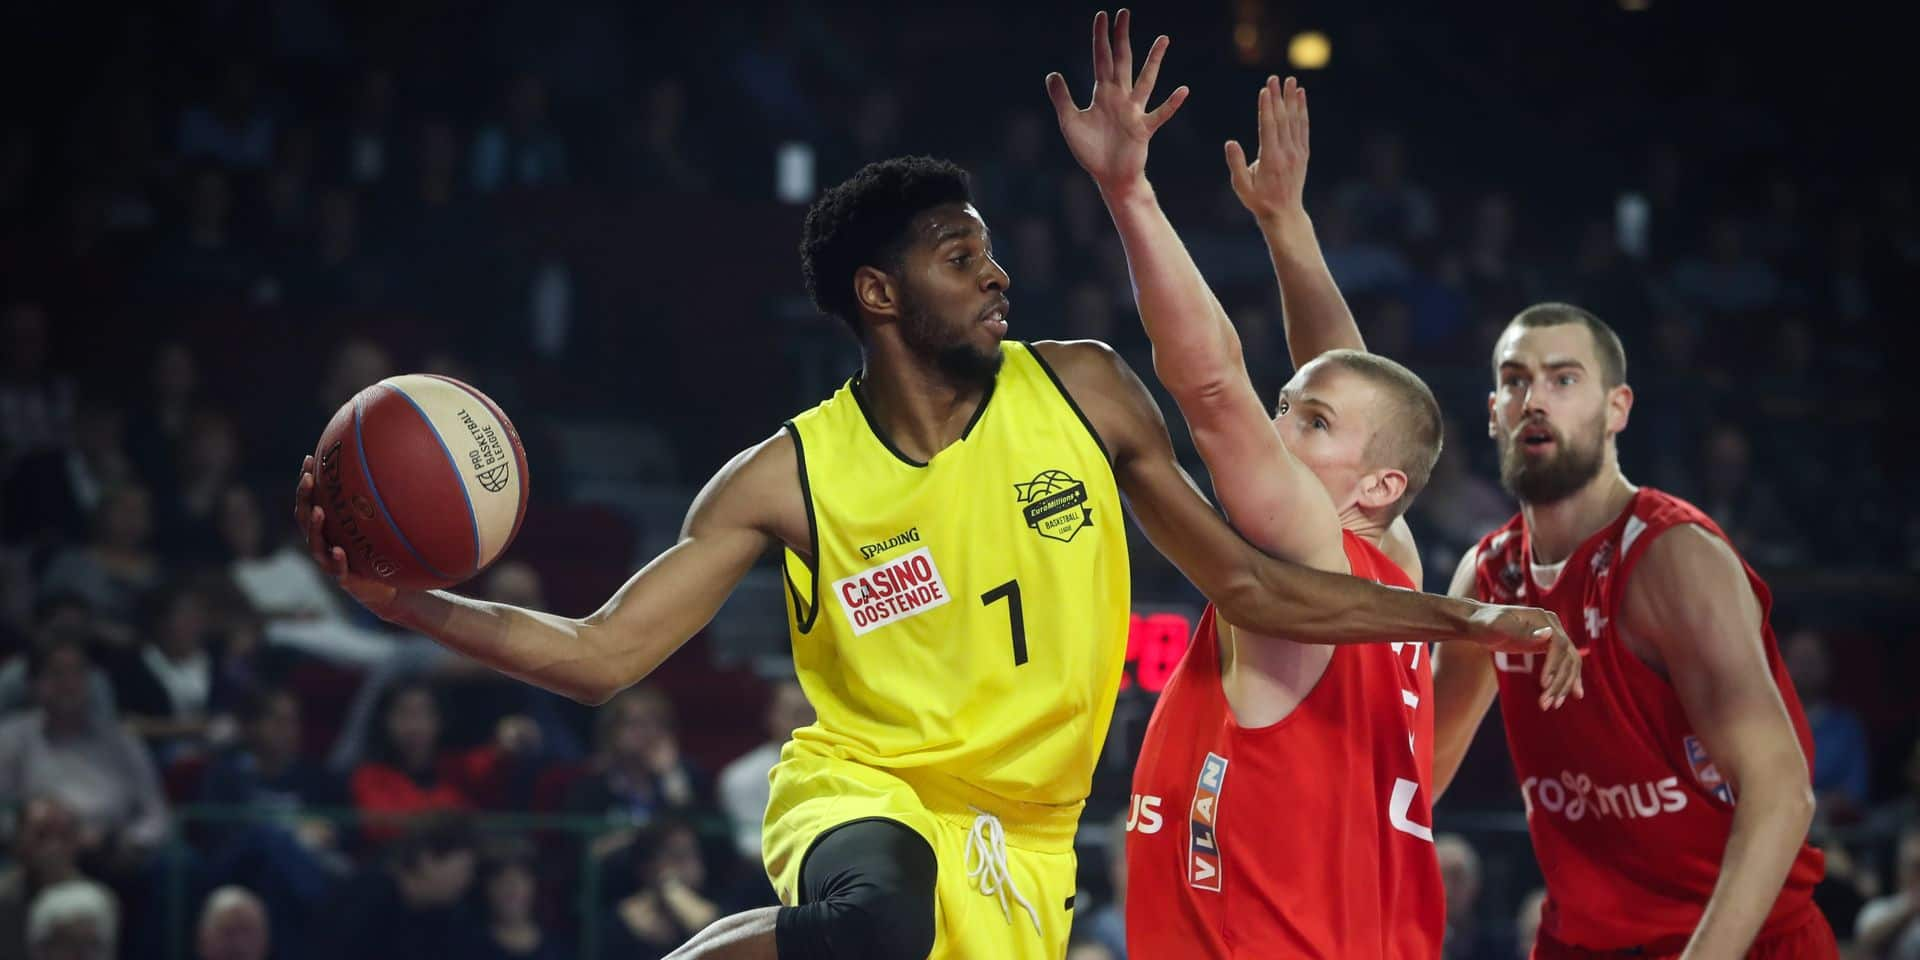 Oostende's Loic Schwartz and Charleroi's Niels Marnegrave fight for the ball during the basketball match between Spirou Charleroi and BC Oostende, on the fourth day of the EuroMillions League Basketball competition, Friday 13 October 2017 in Charleroi. BELGA PHOTO VIRGINIE LEFOUR